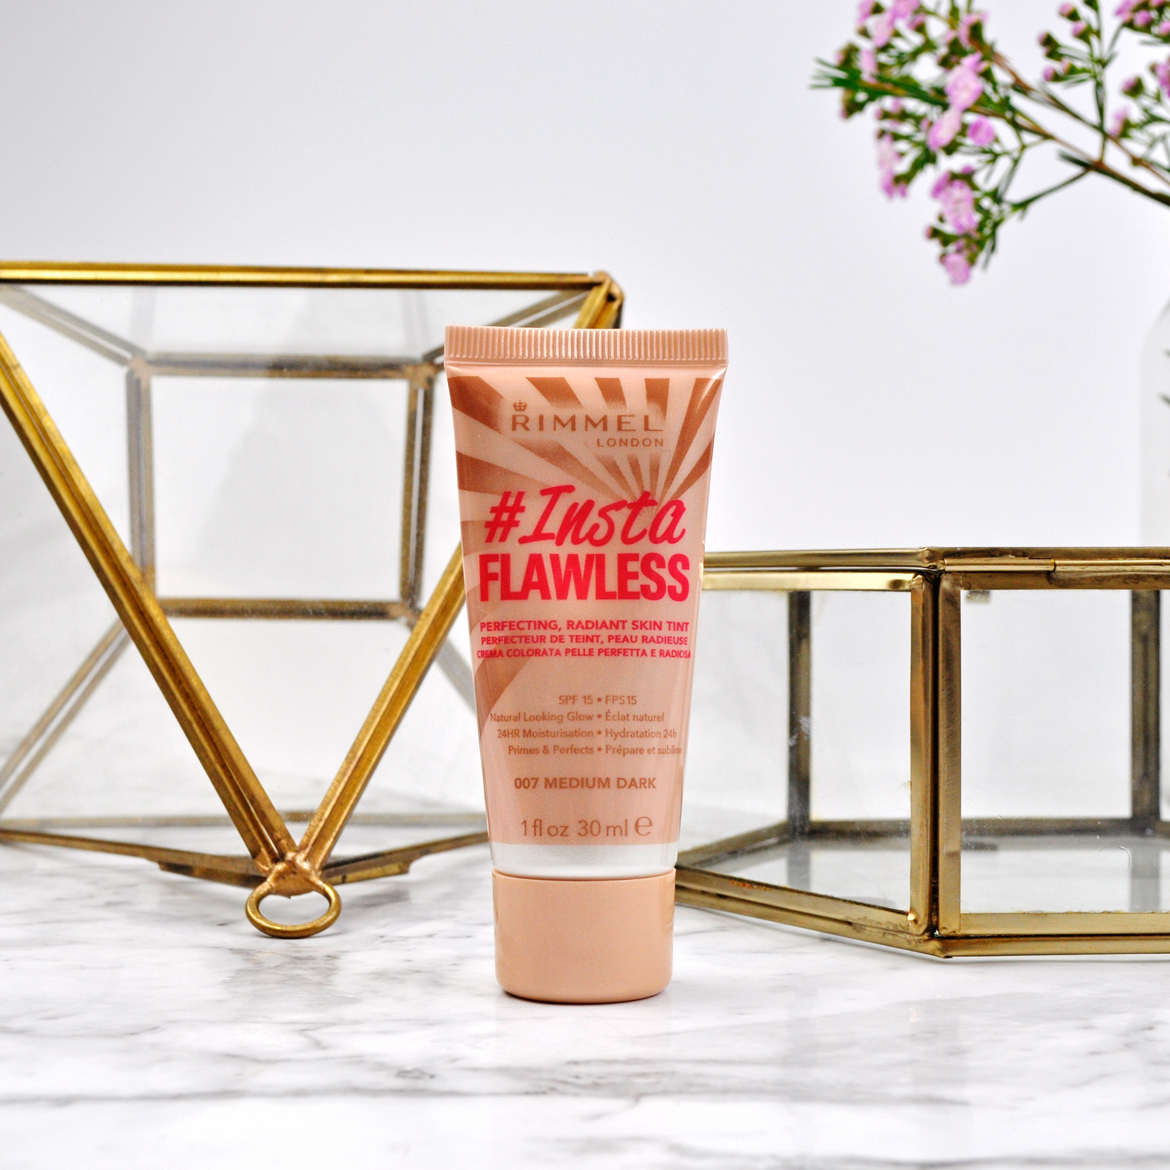 Rimmel London Insta Flawless